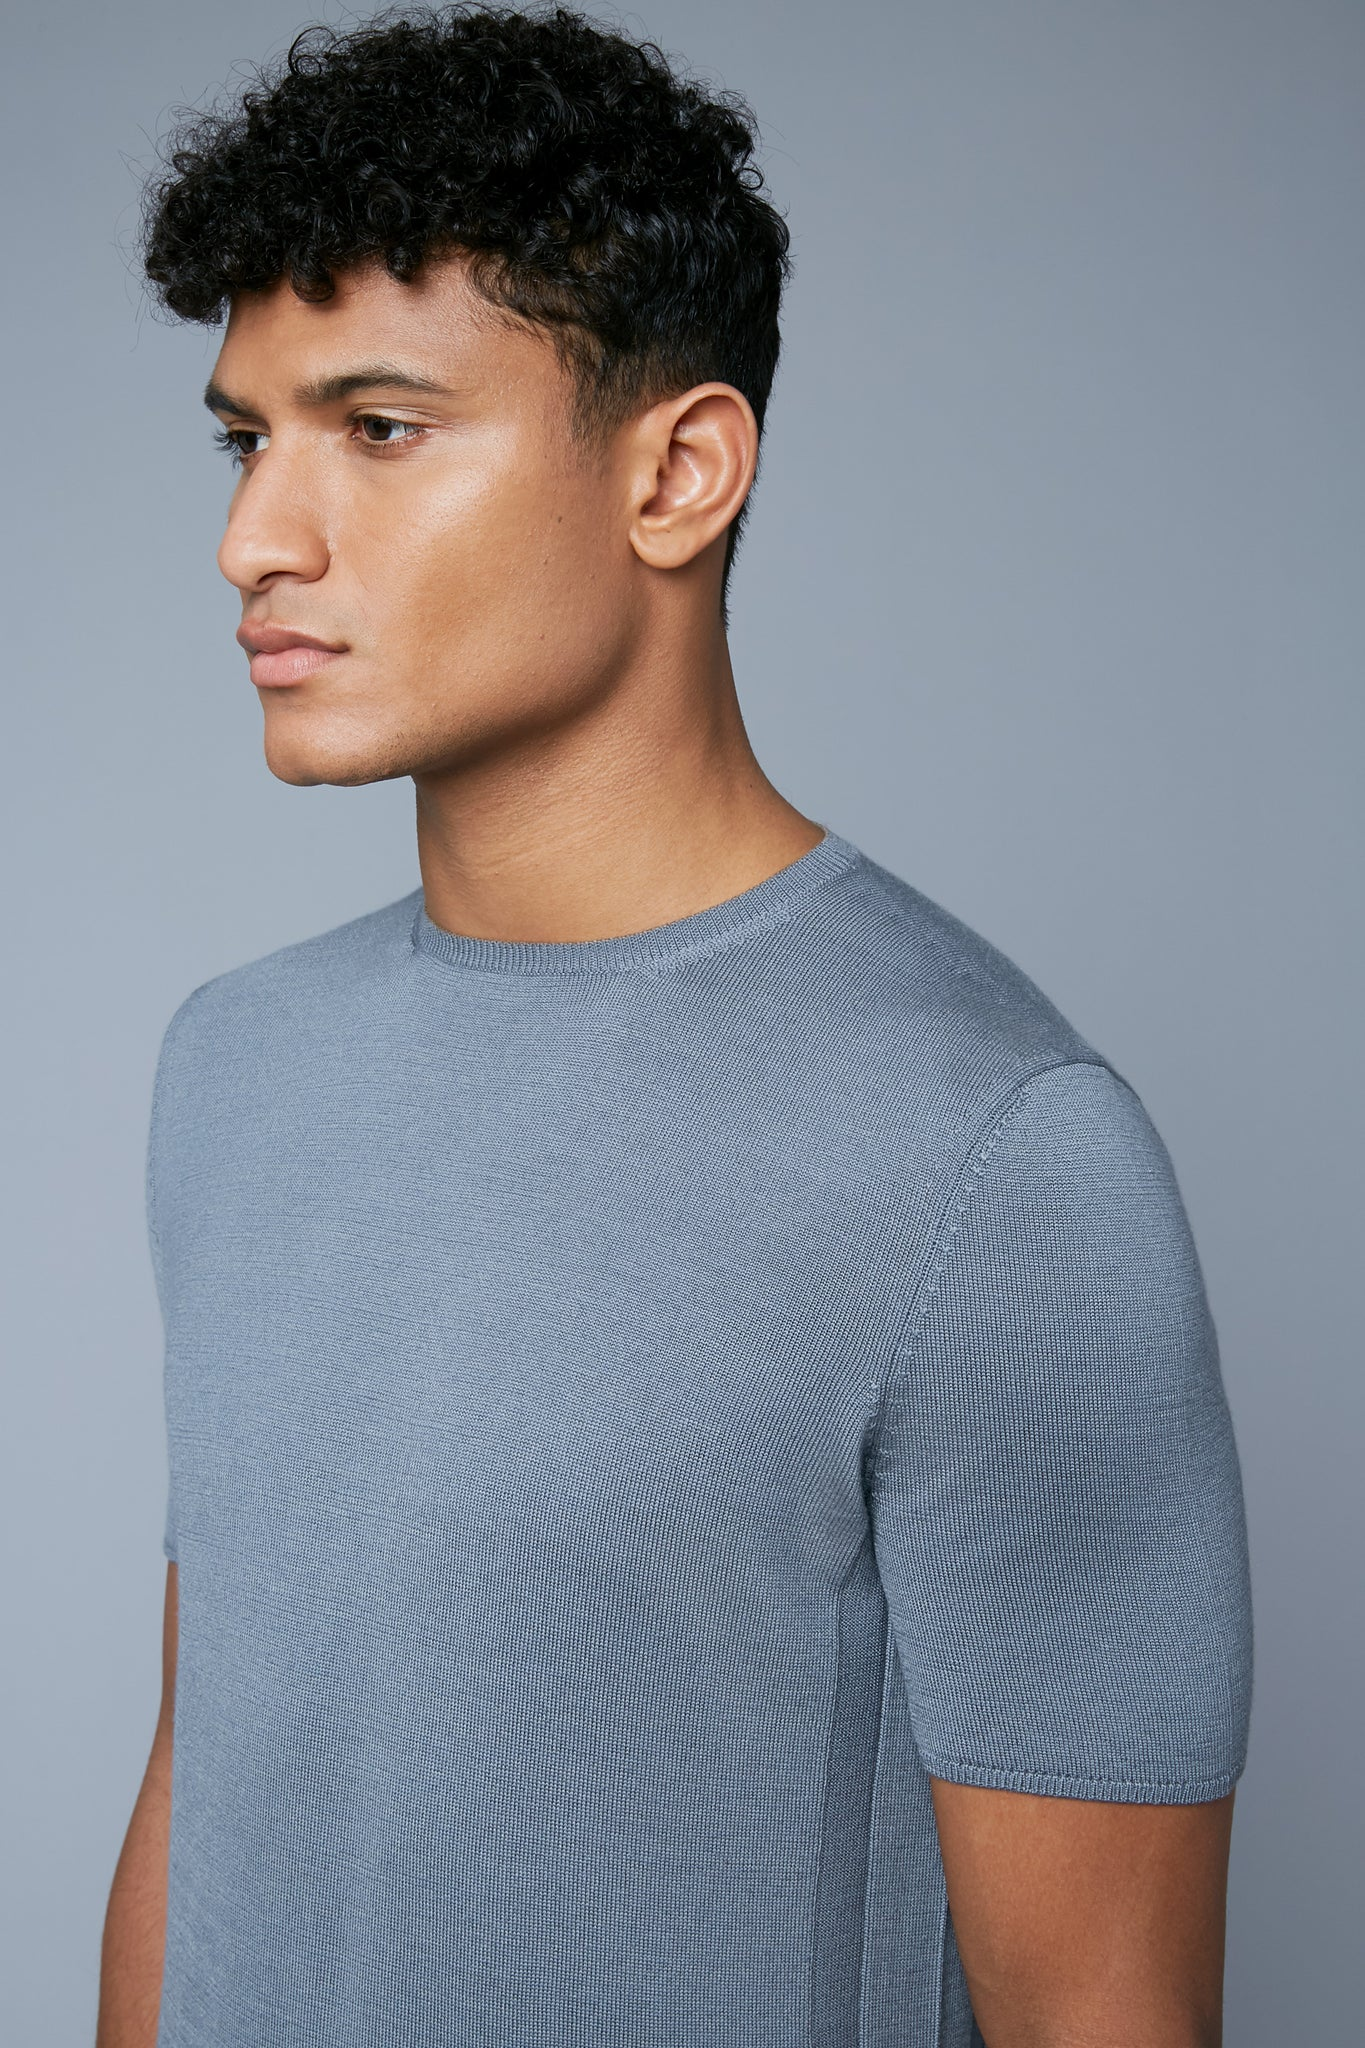 Mood View: Model Tre Boutilier wearing Short Sleeve Sweater Tee